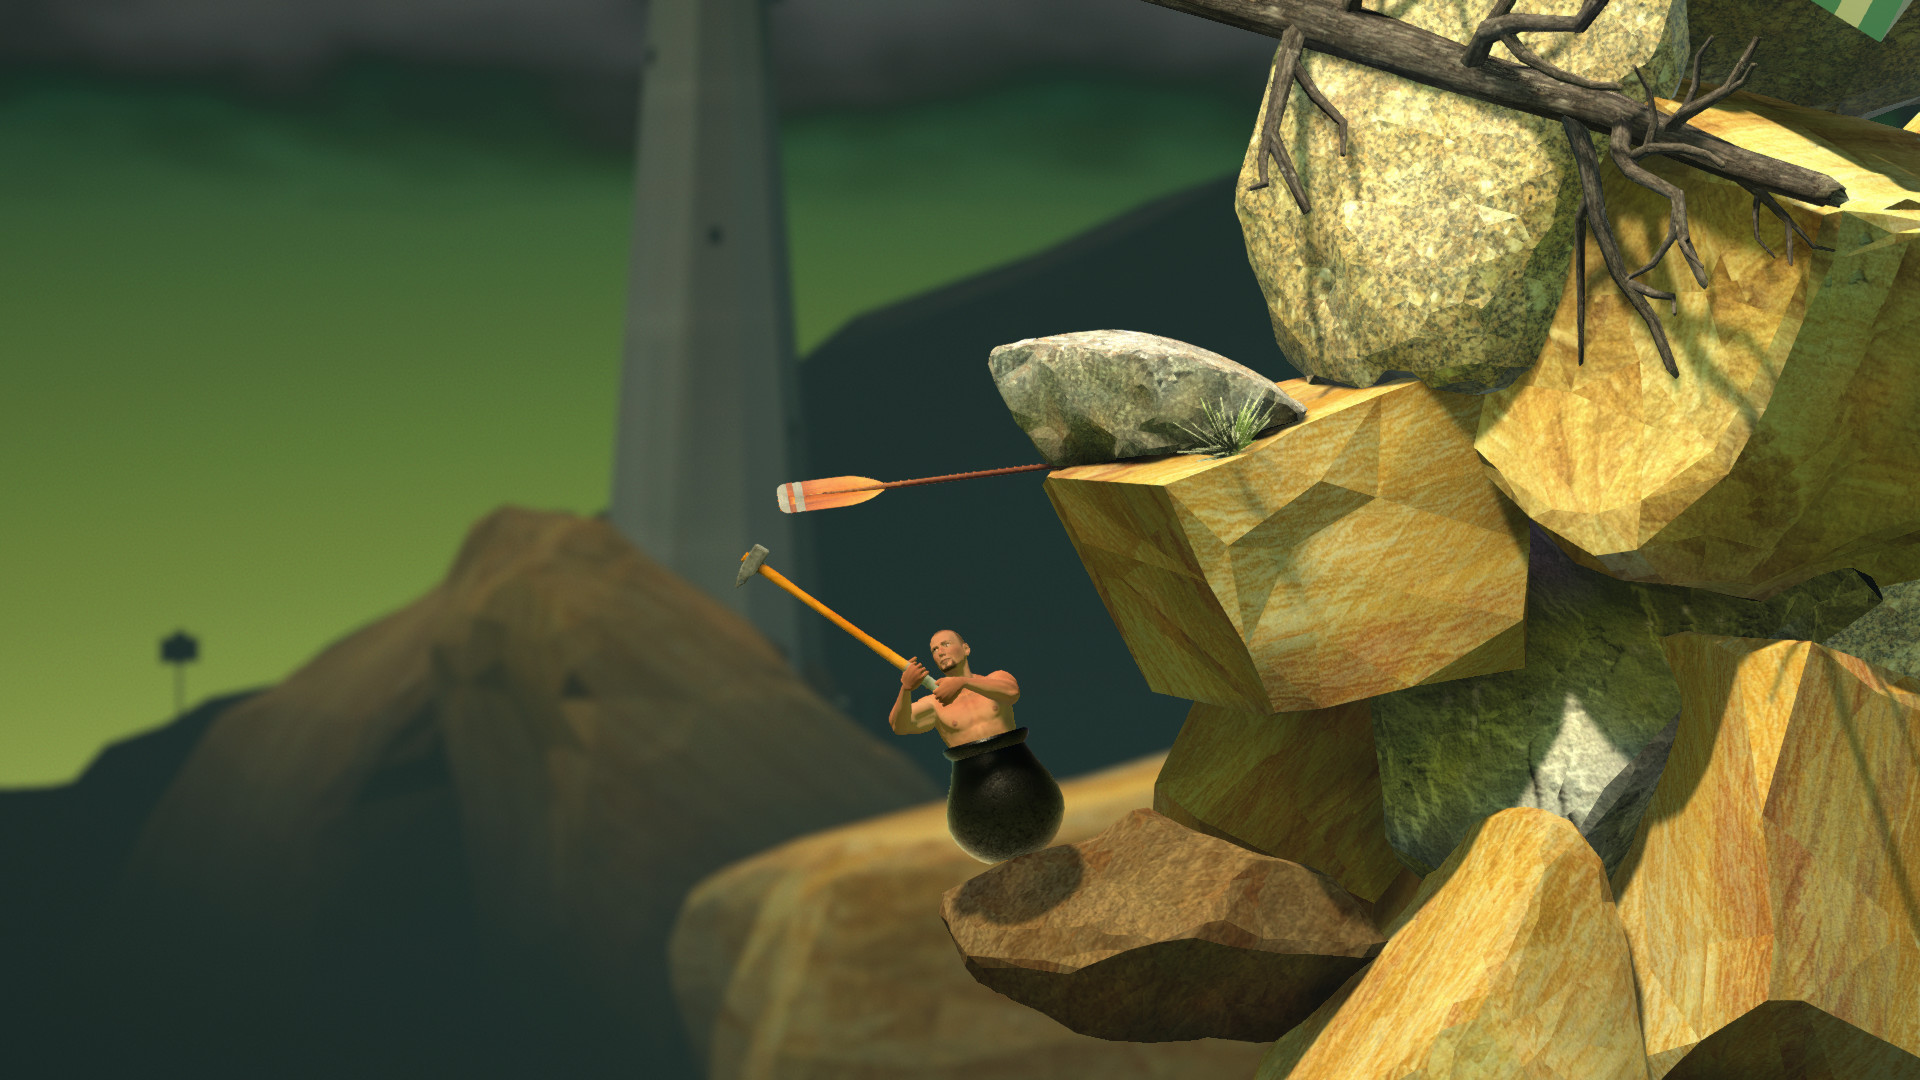 Bennett Foddy: Streamers And YouTubers Will Drive Diversity In Games